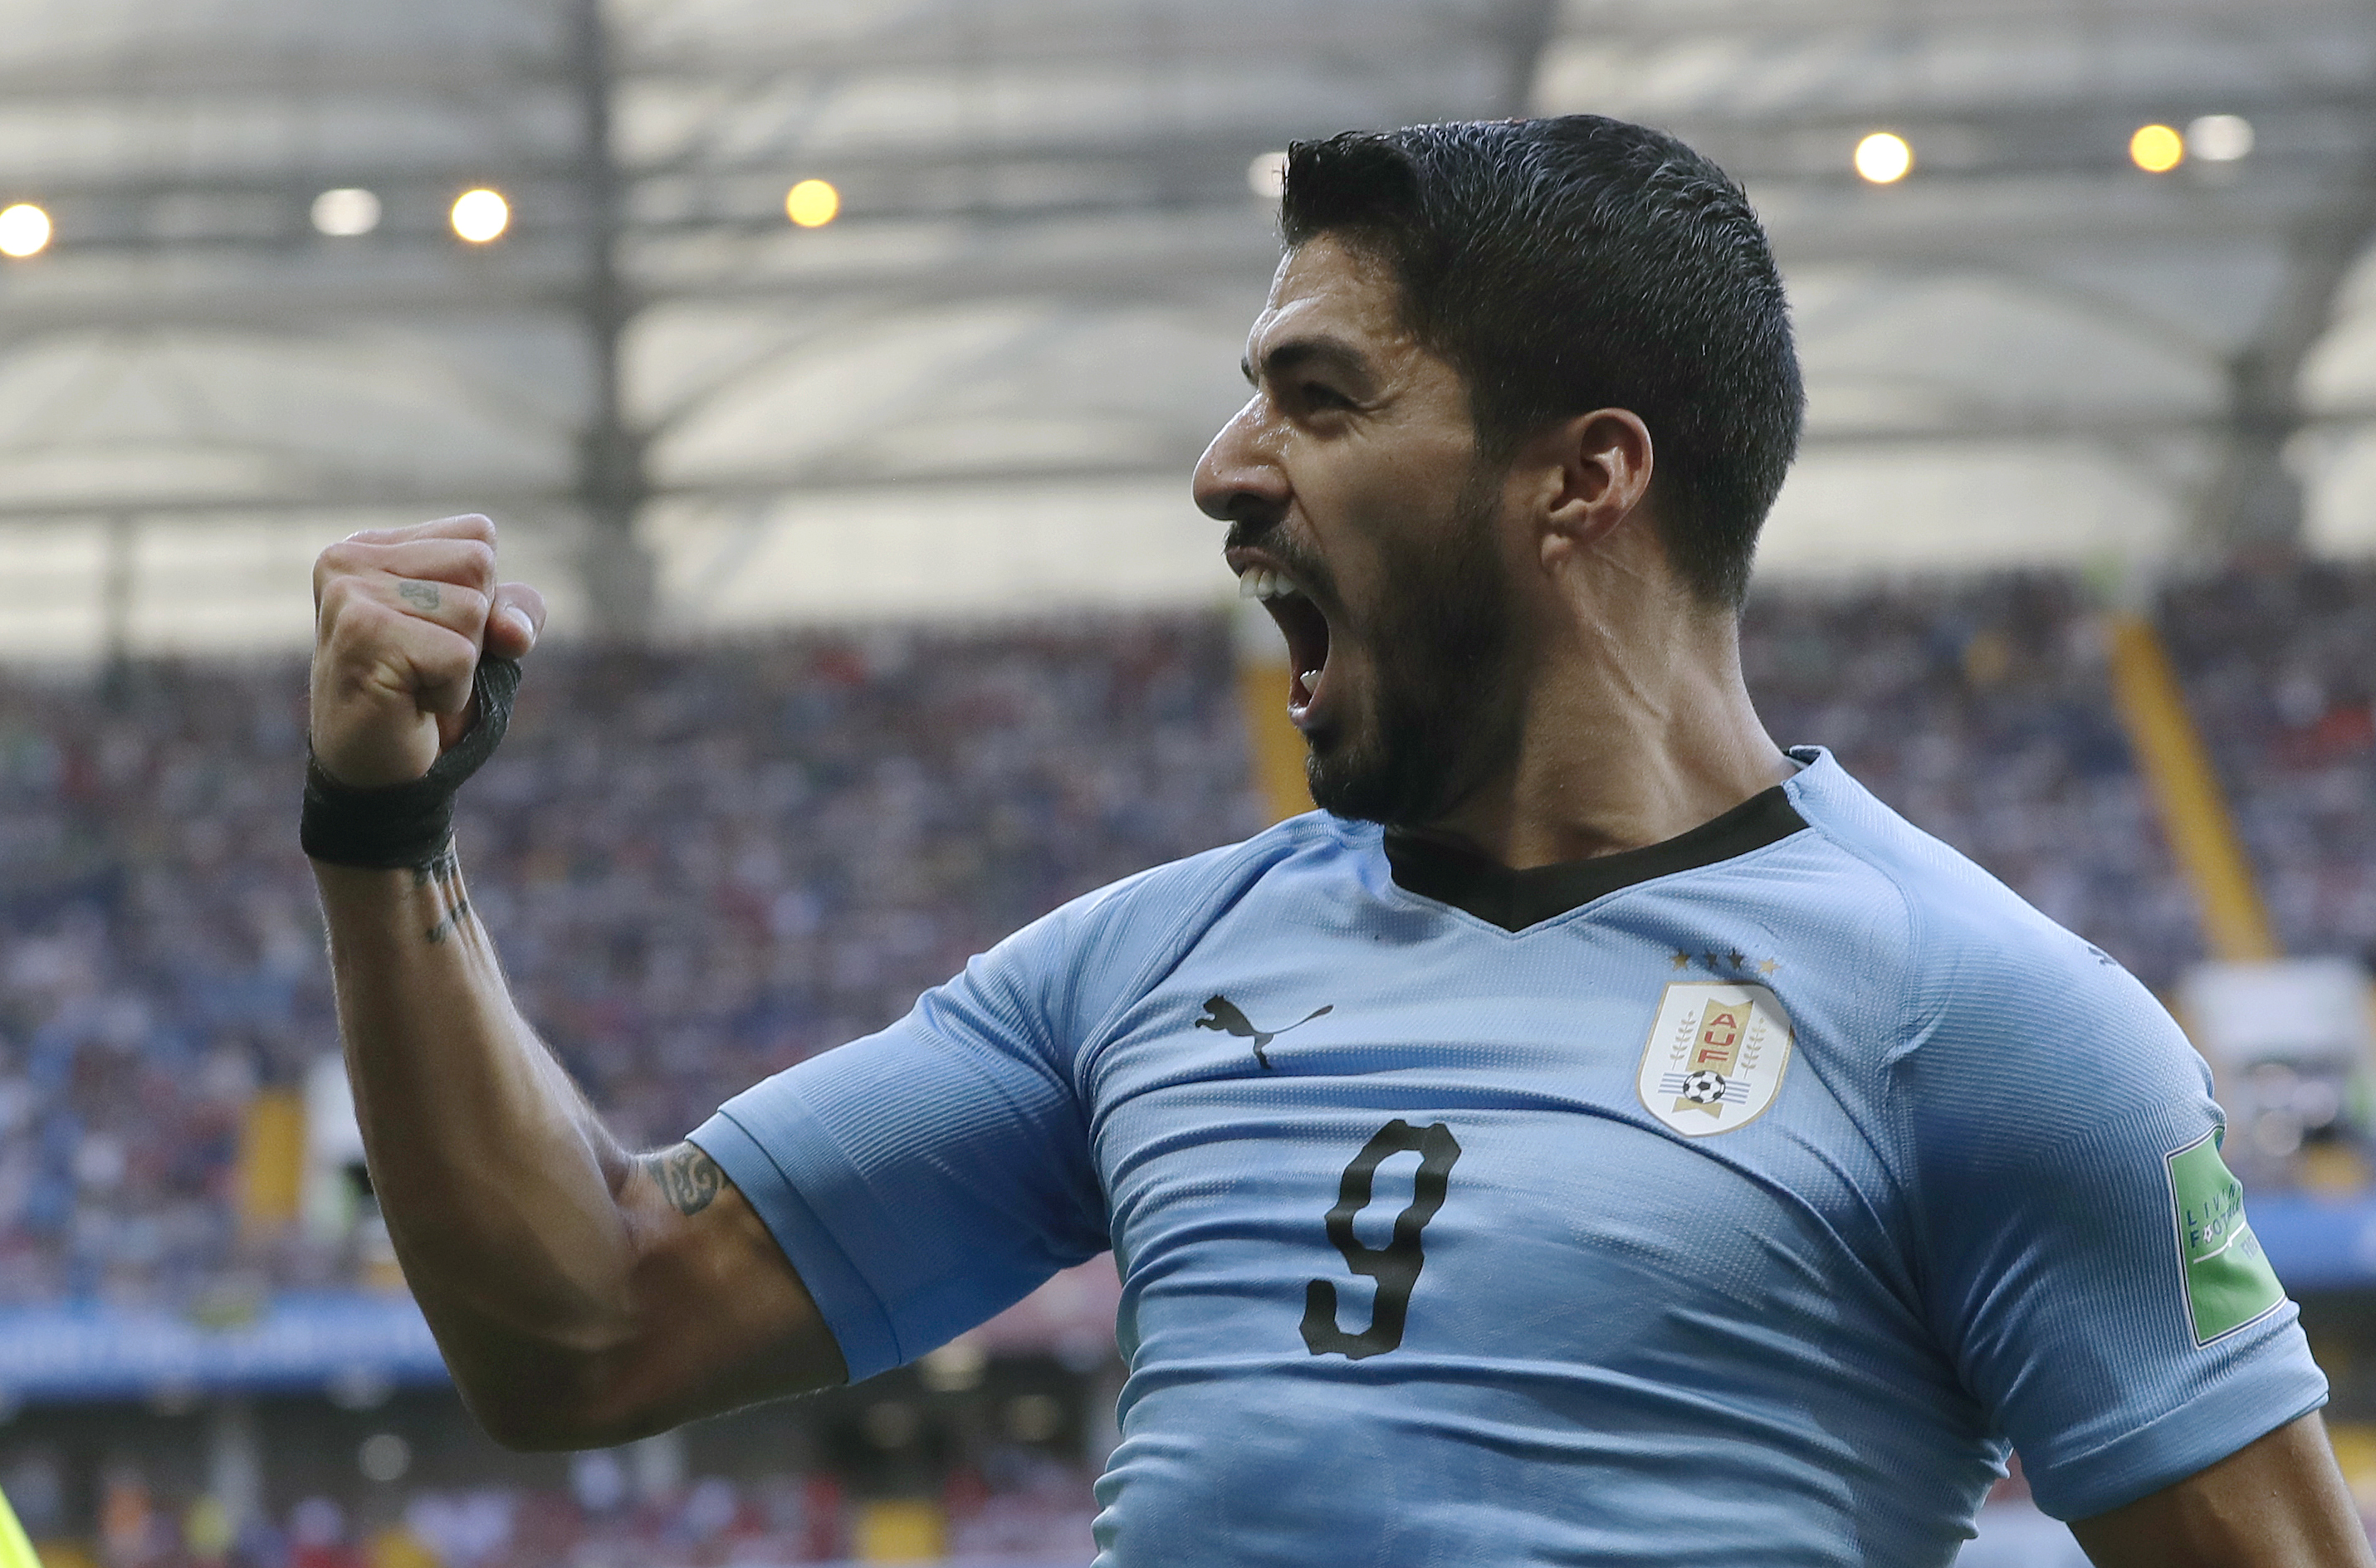 "<div class=""meta image-caption""><div class=""origin-logo origin-image none""><span>none</span></div><span class=""caption-text"">Uruguay's Luis Suarez celebrates scoring his side's first goal during the group A match against Saudi Arabia in Rostov Arena in Rostov-on-Don, Russia, June 20. (Andrew Medichini/AP Photo)</span></div>"